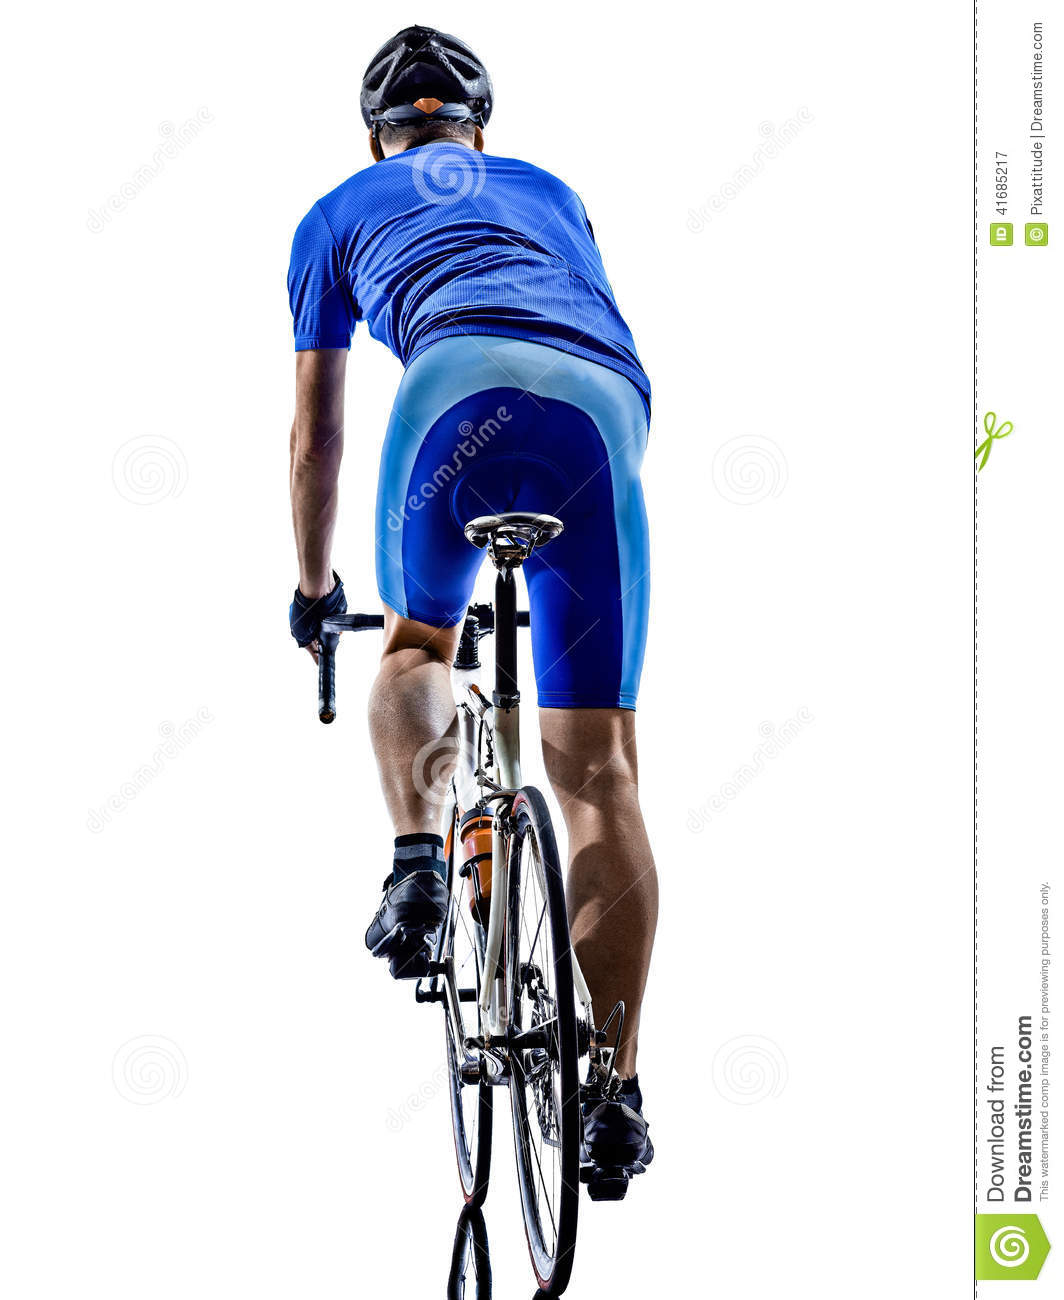 Cyclist Cycling Road Bicycle Rear View Silhouette Stock Photo - Image ...